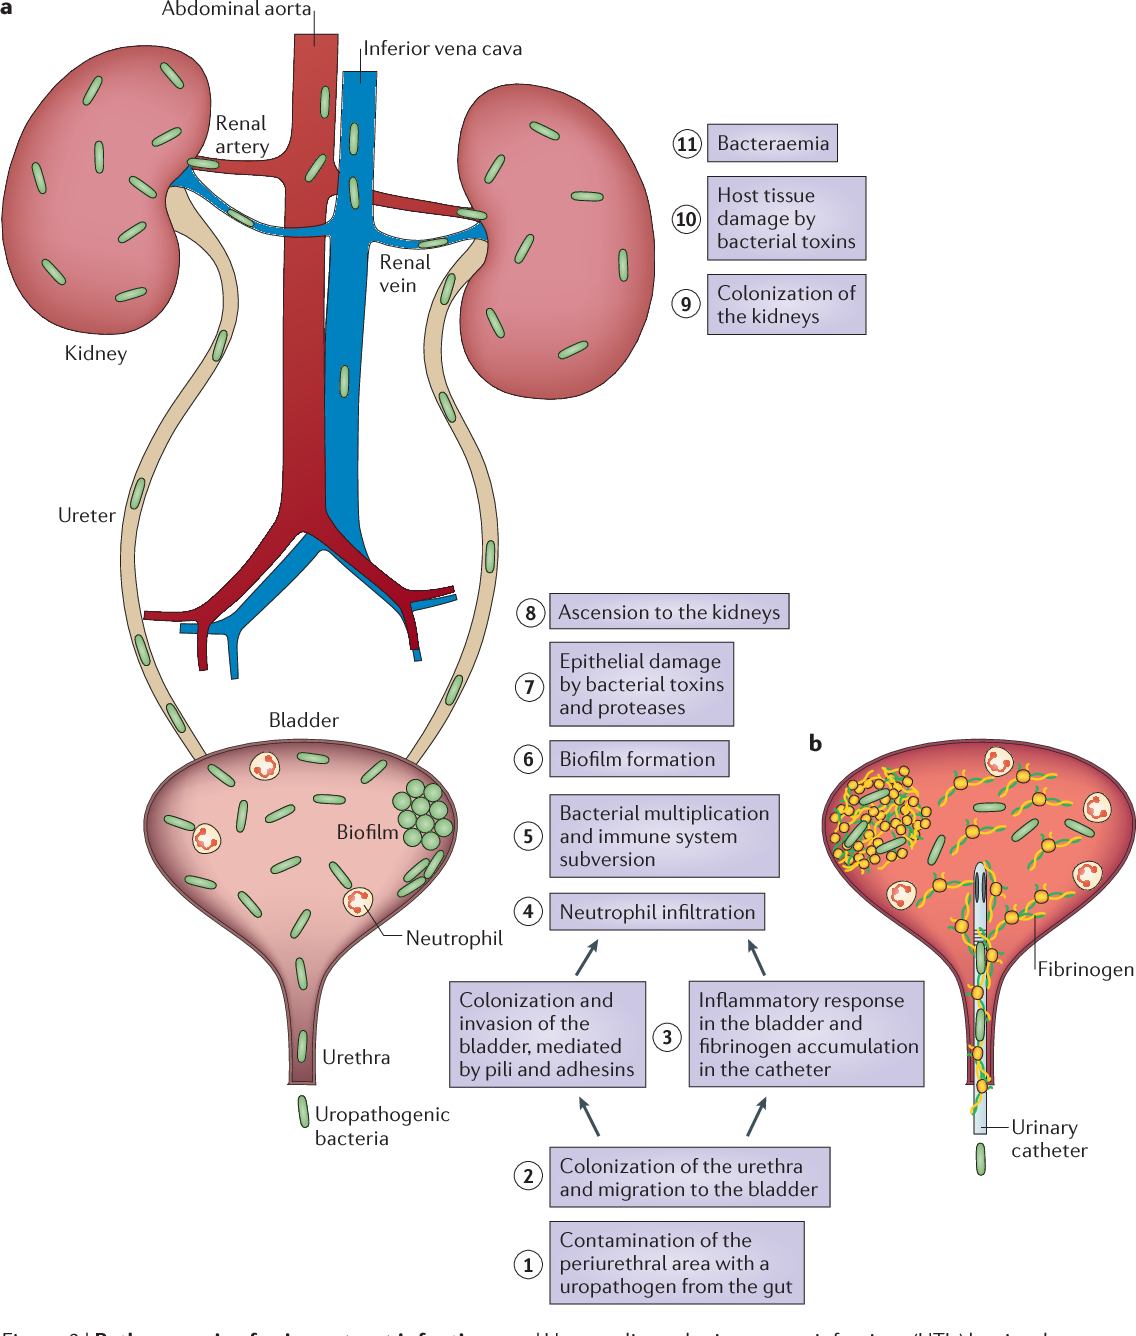 Urinary tract infections: epidemiology, mechanisms of